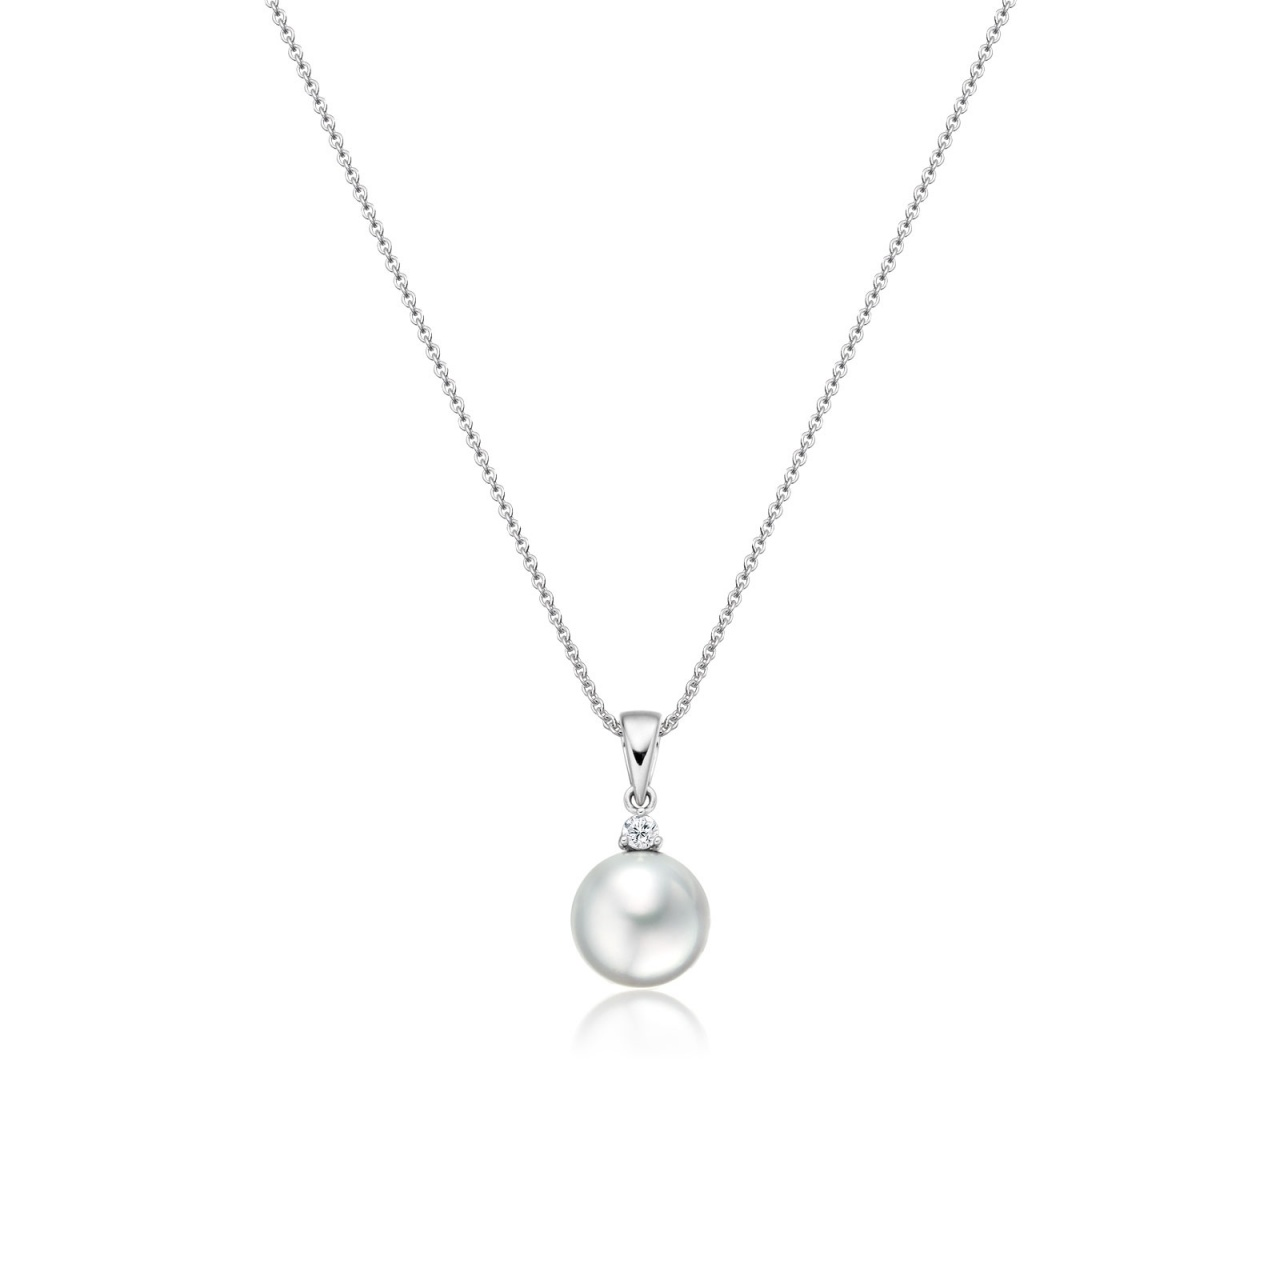 White South Sea Pearl and Diamond Pendant-SPWRWG0175-1